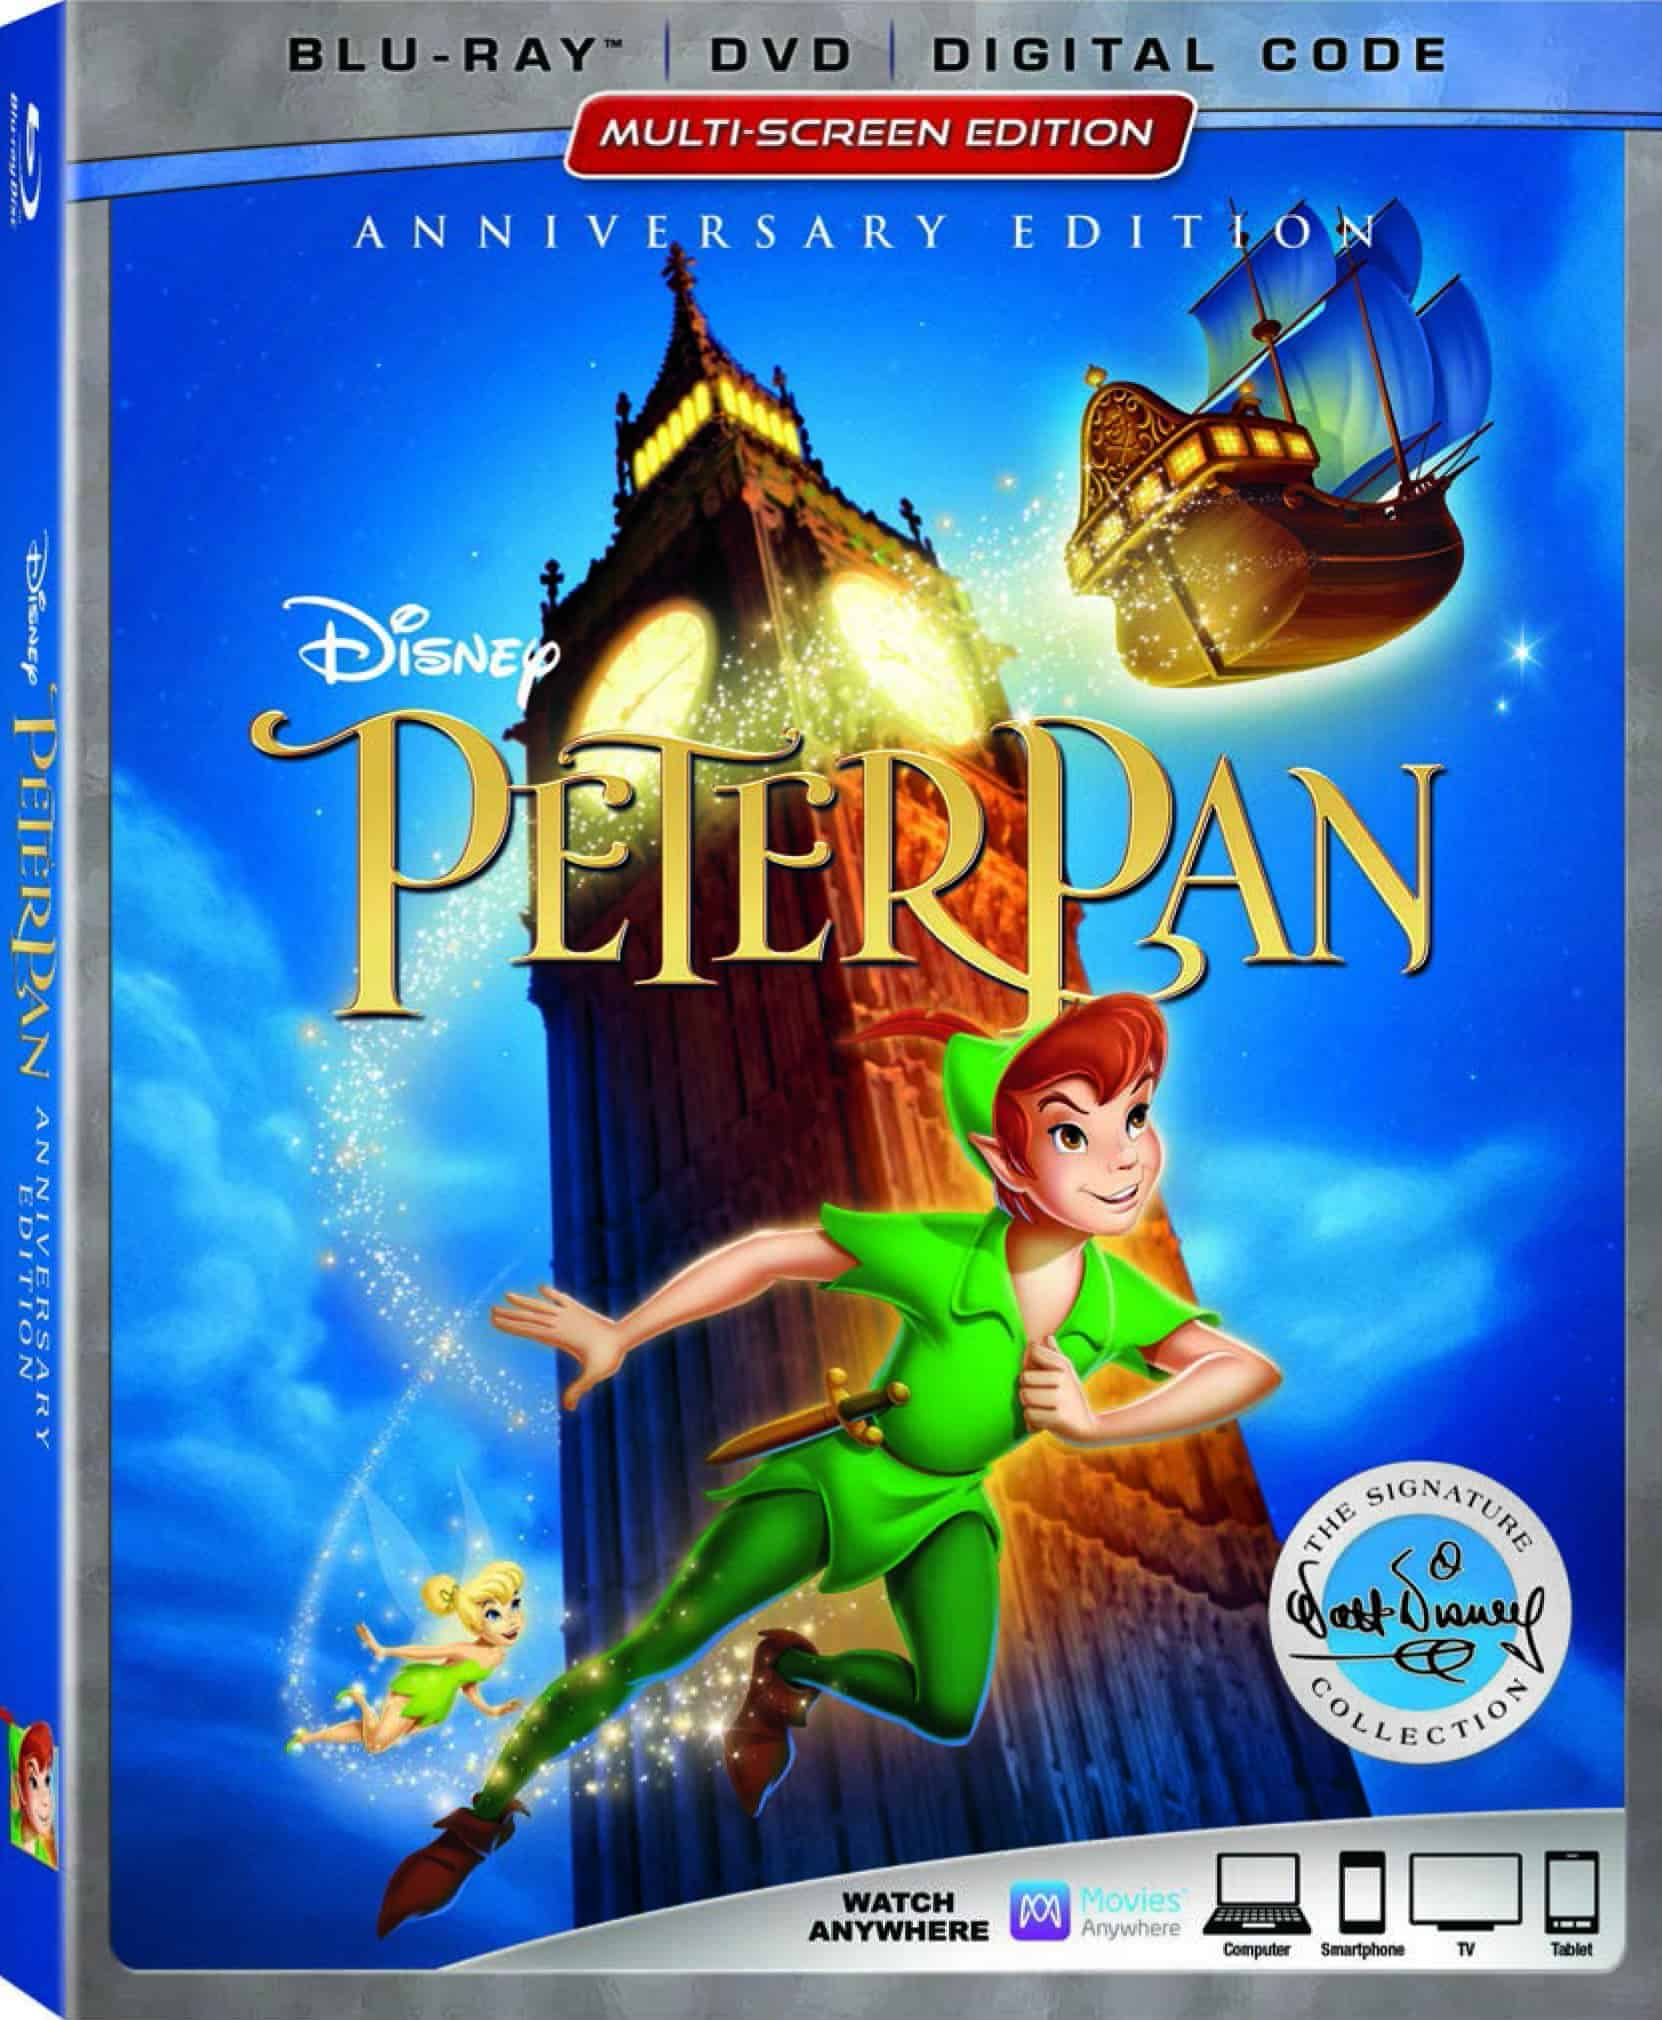 Peter Pan Available June 5th